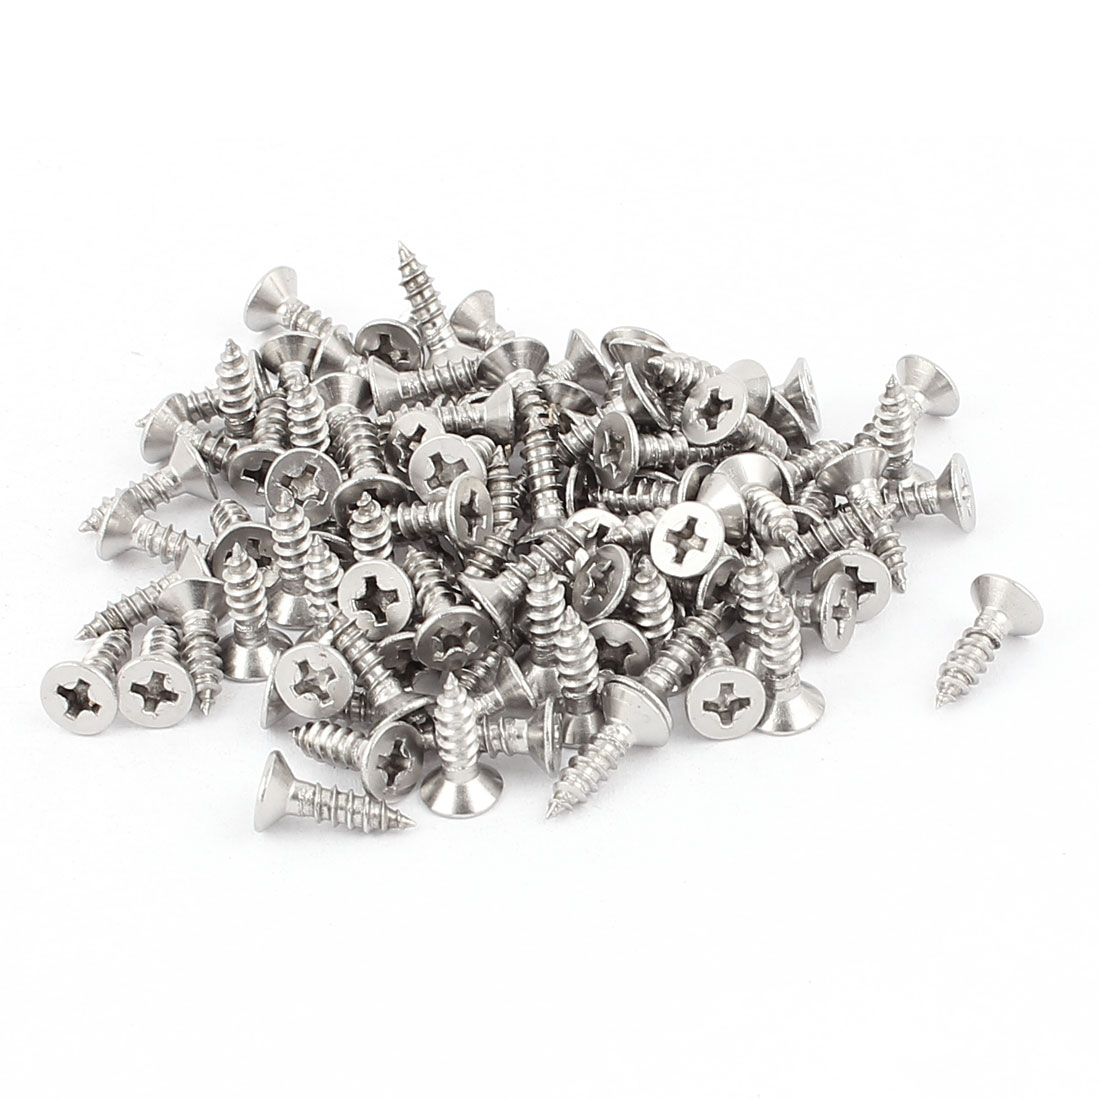 3.5mm x 13mm Stainless Steel Countersunk Cross Head Self Tapping Screw 100 Pcs